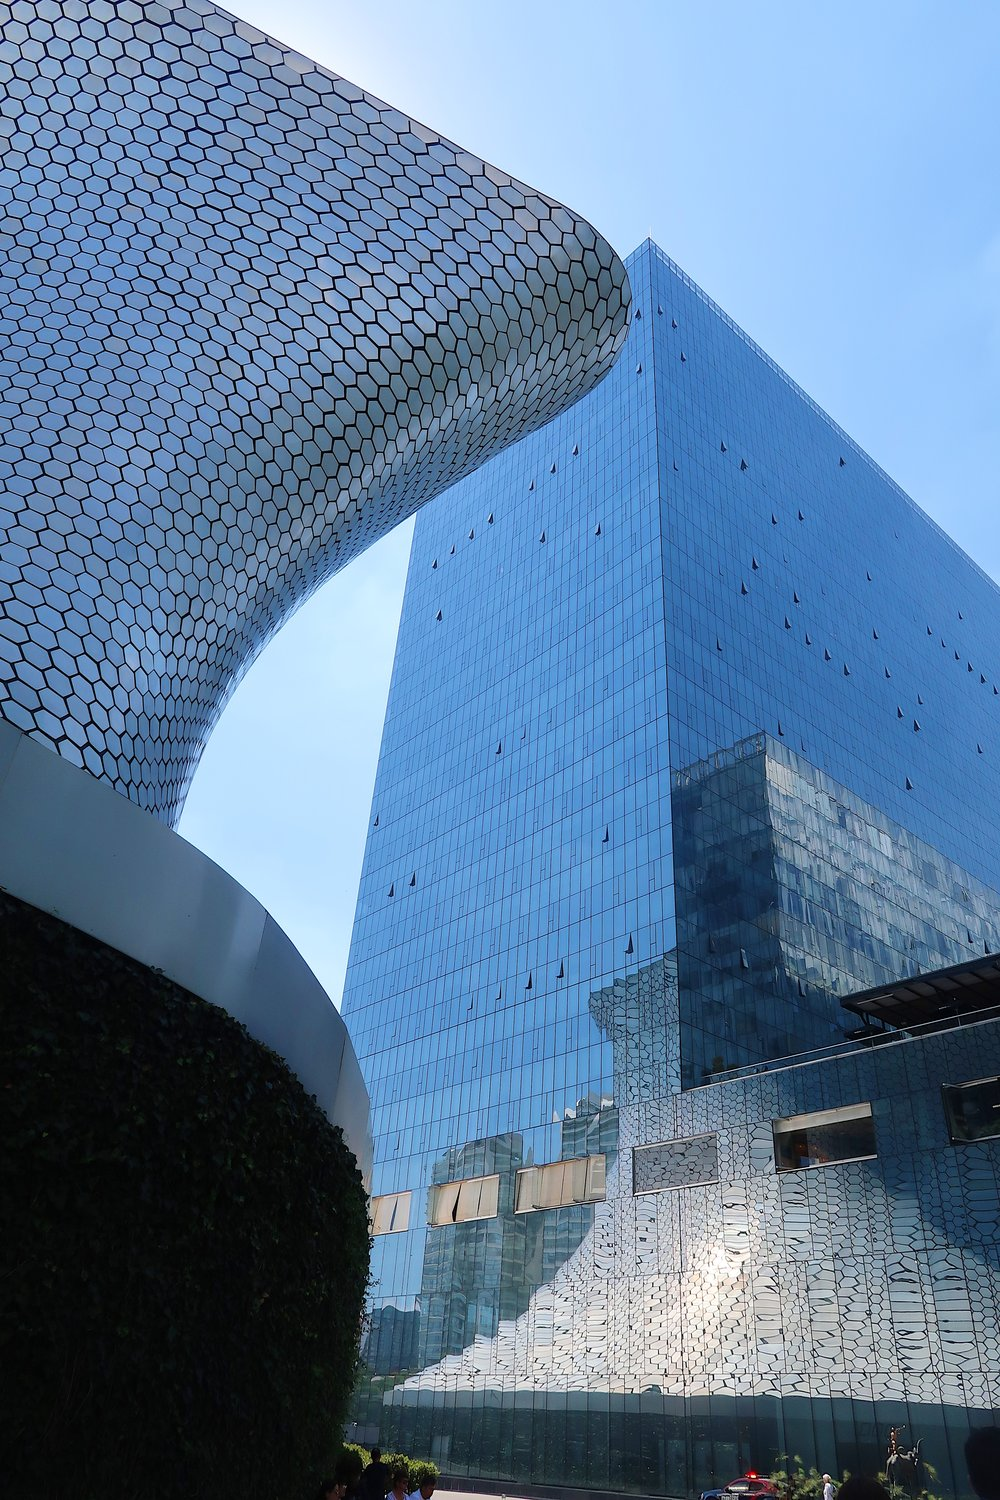 After a good breakfast we headed over to Museo Soumaya. The architecture is amazing! Such a beautiful museum.